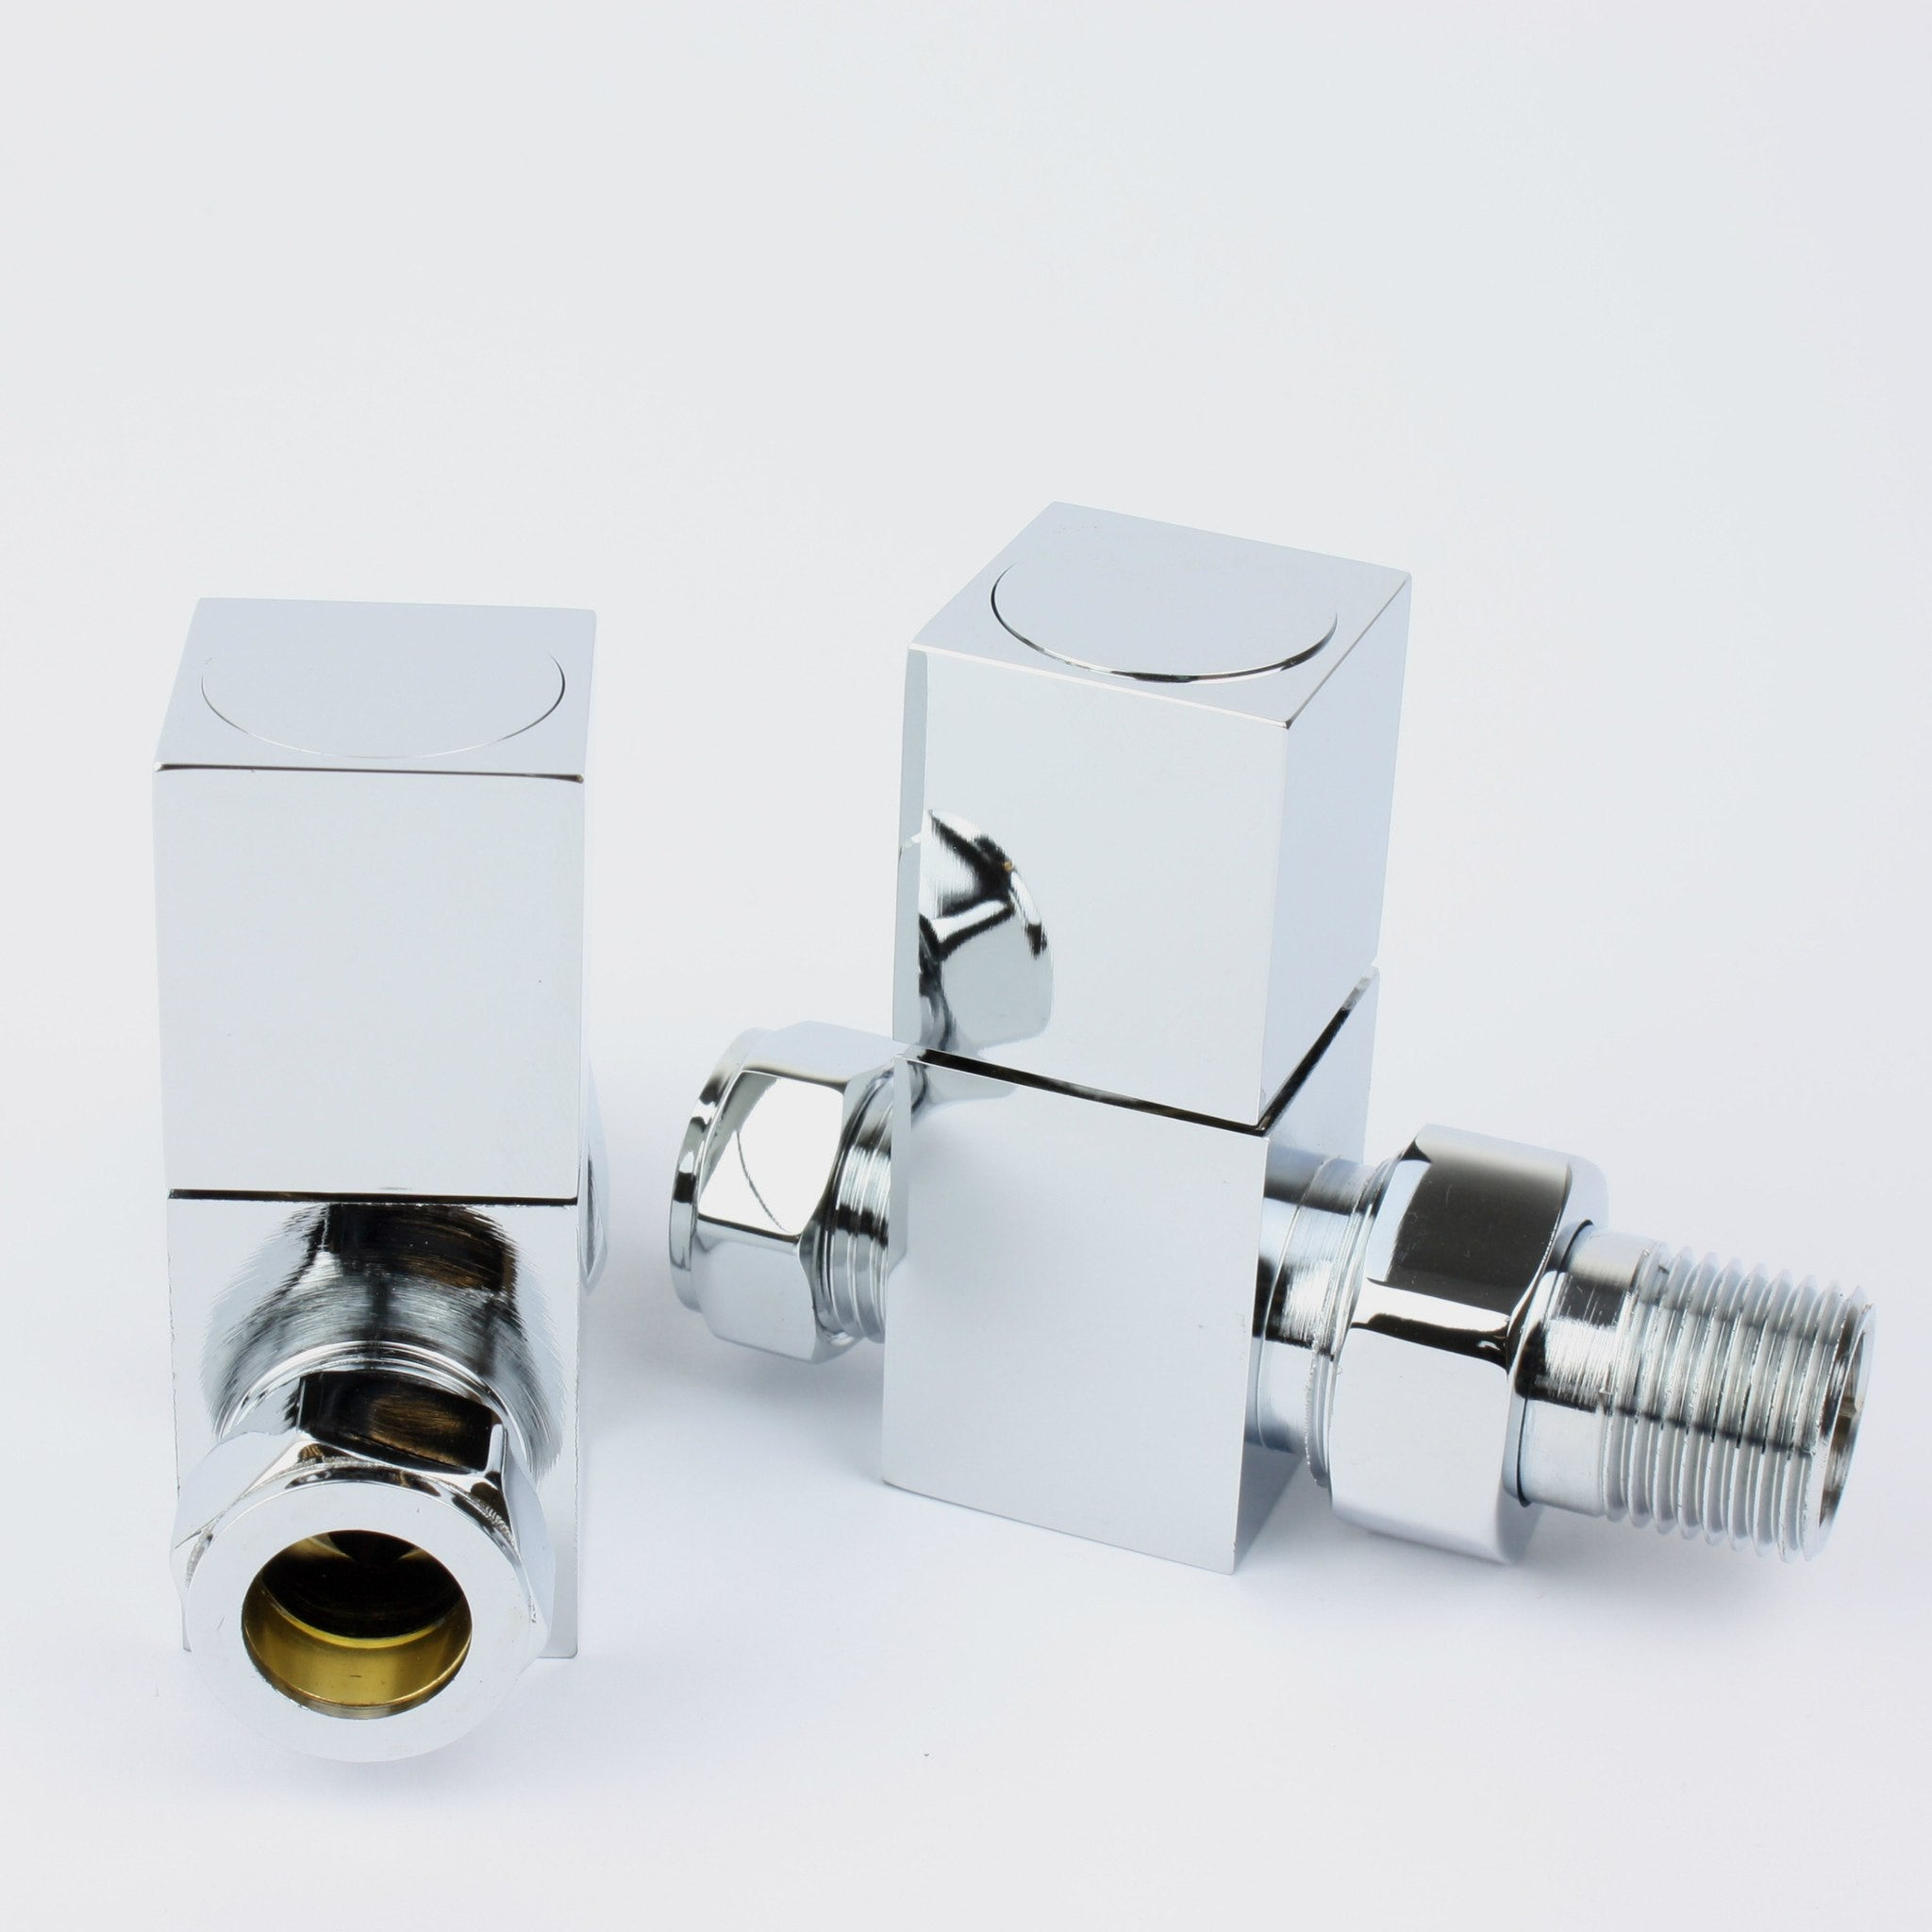 Chrome Plated Square Straight Valve for Heated Towel Rail Radiator - Elegant Radiators